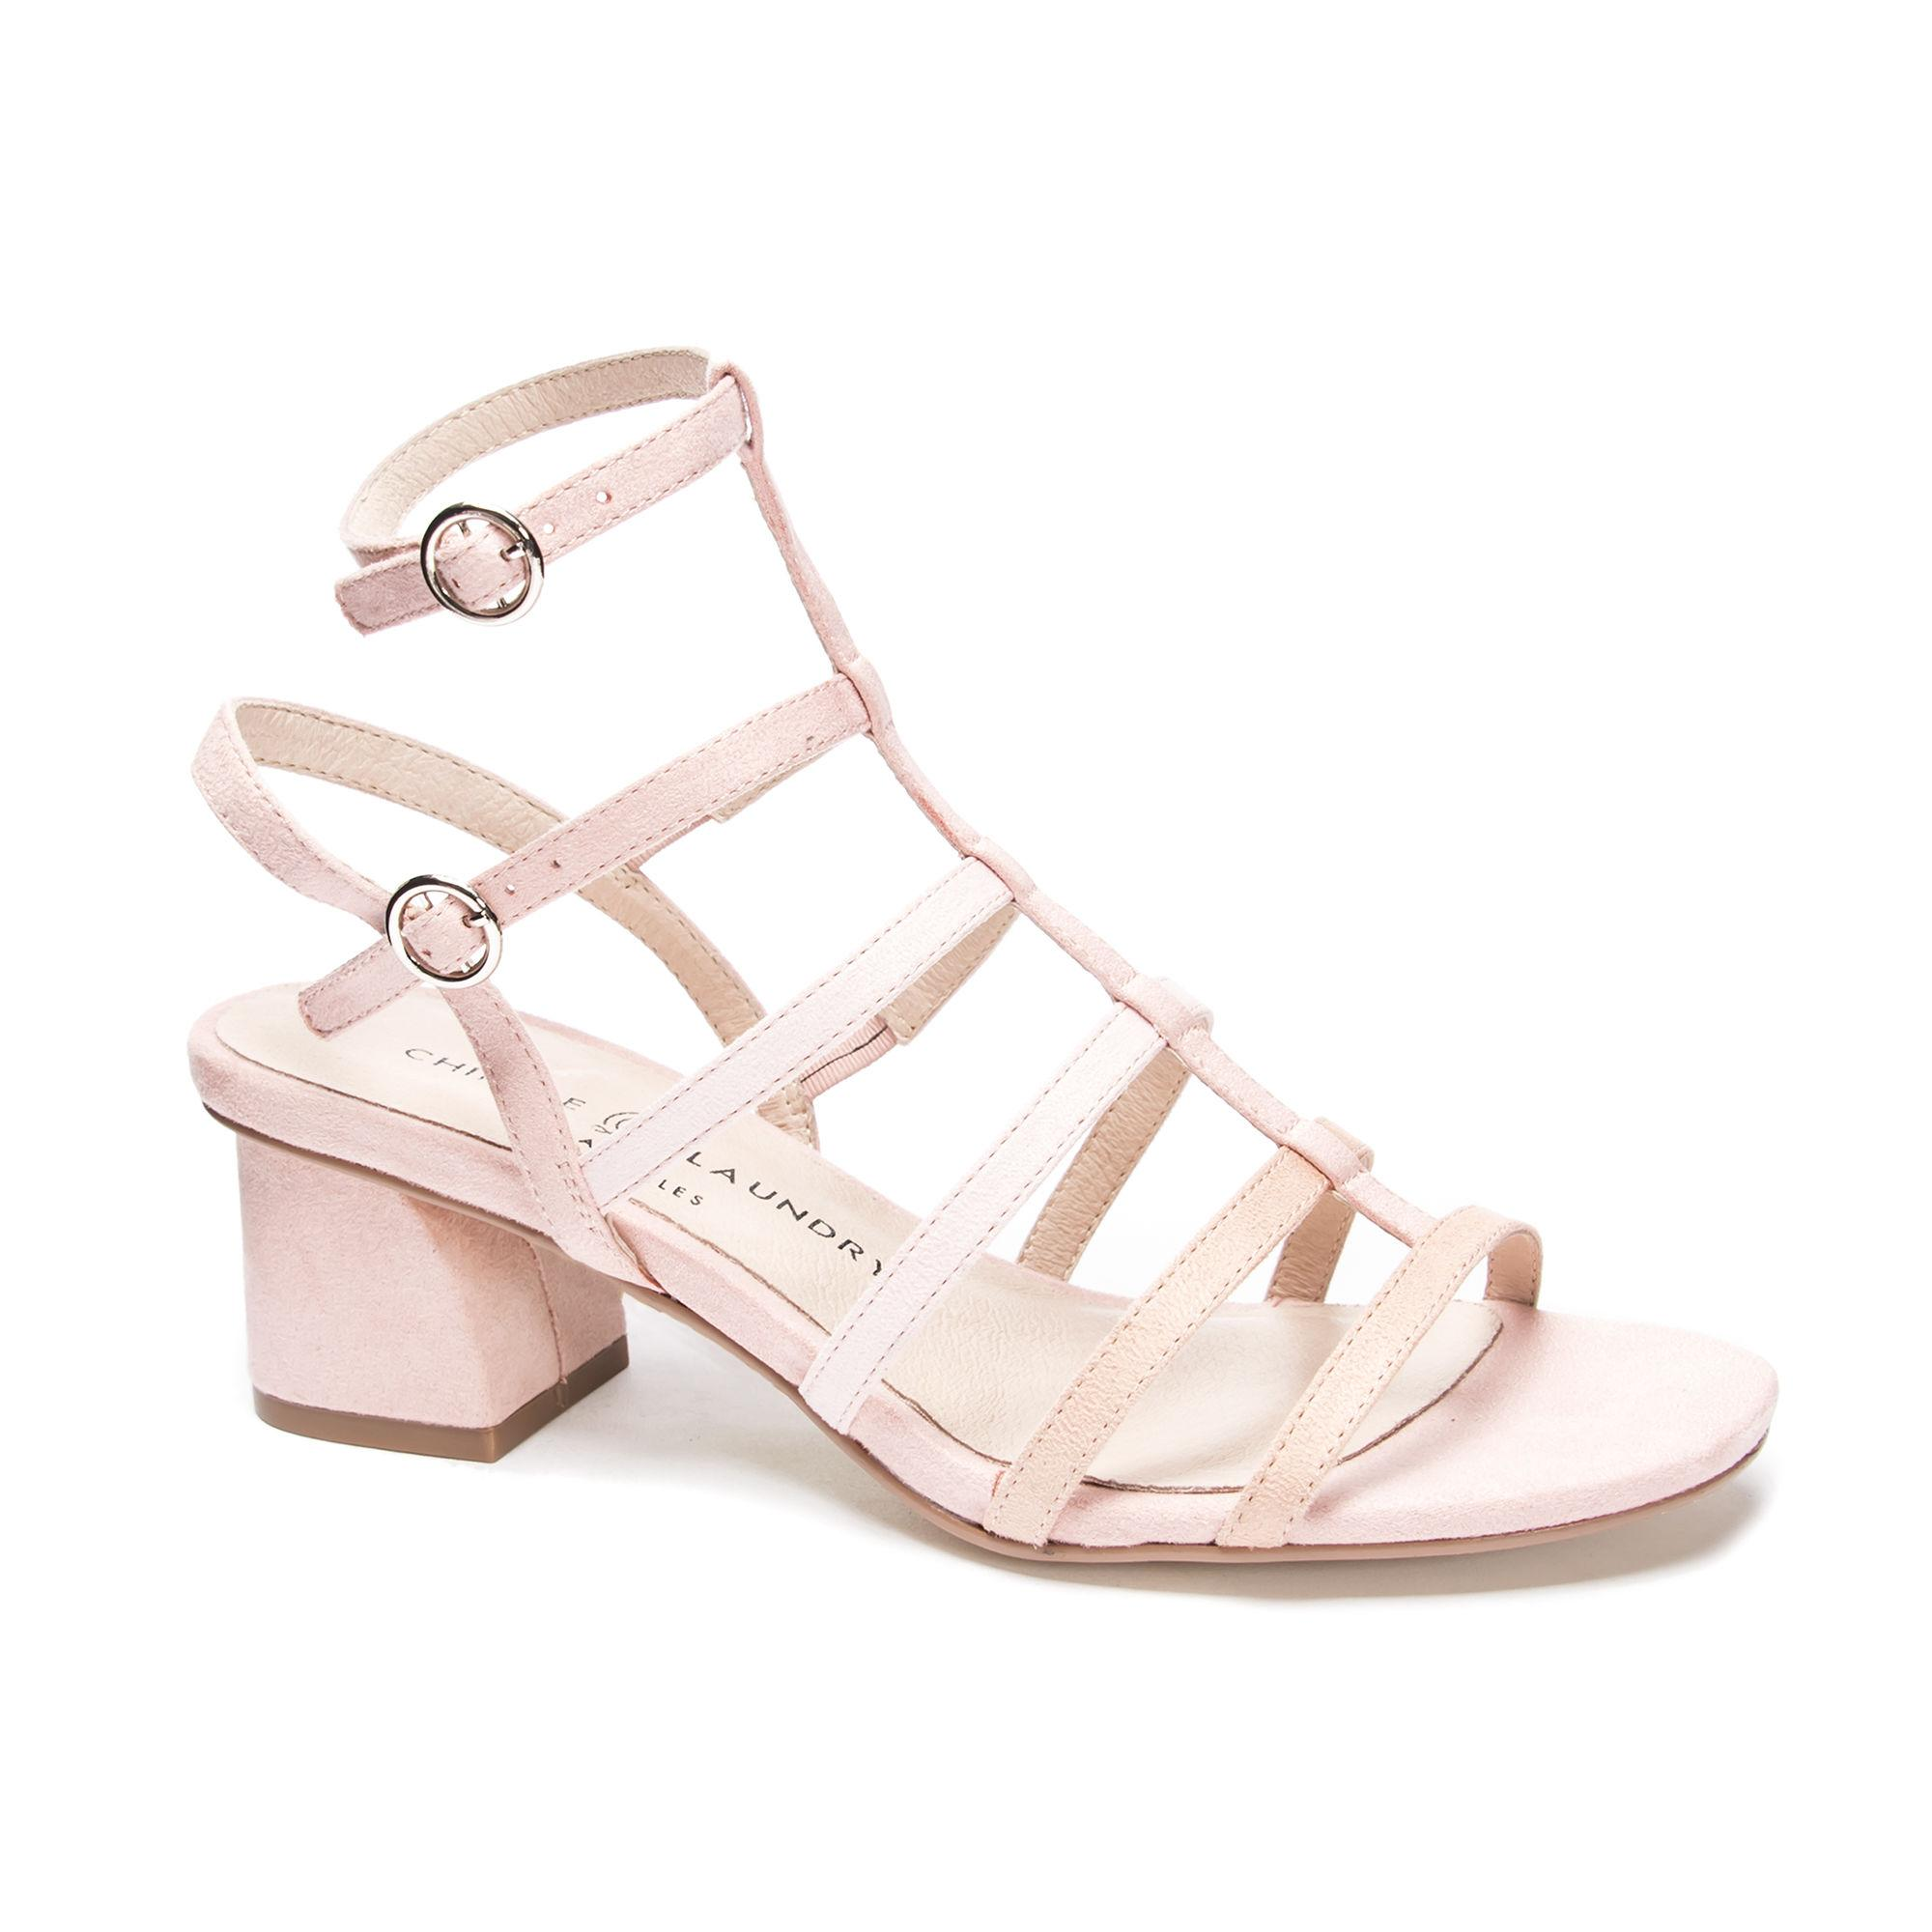 e42cfc78450 Lyst - Chinese Laundry Monroe Block Heel Sandal in Pink